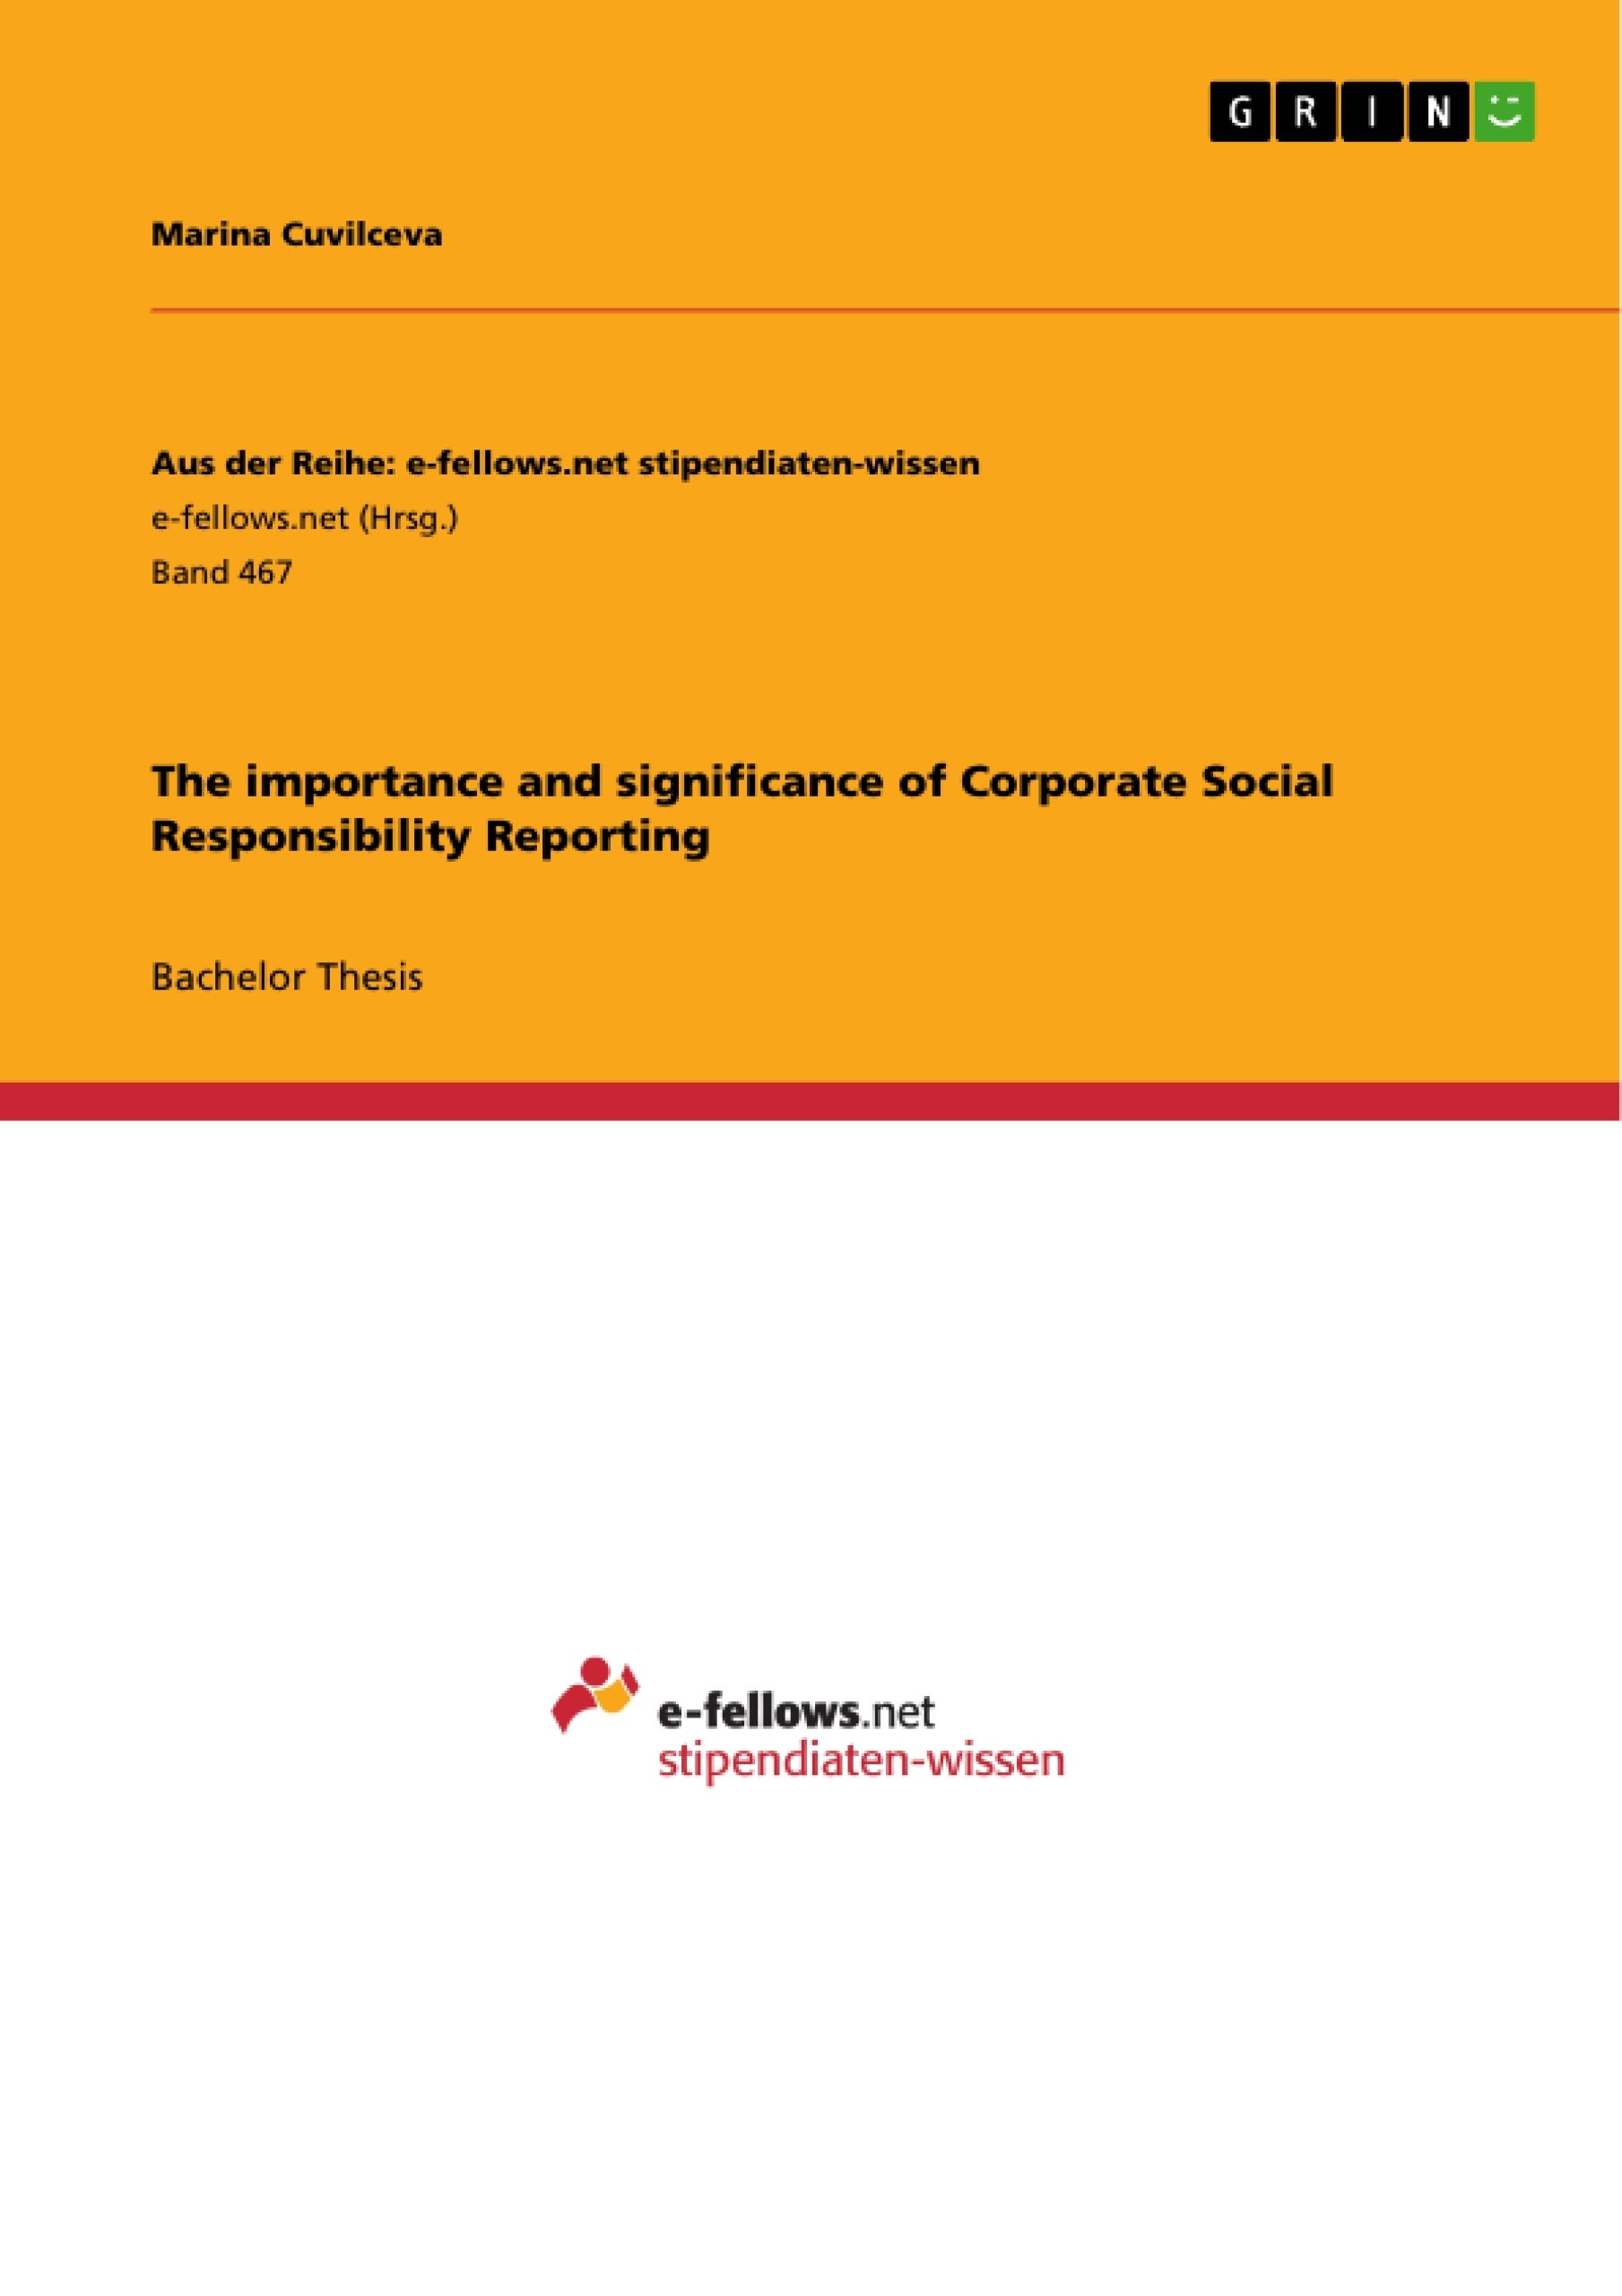 Title: The importance and significance of Corporate Social Responsibility Reporting